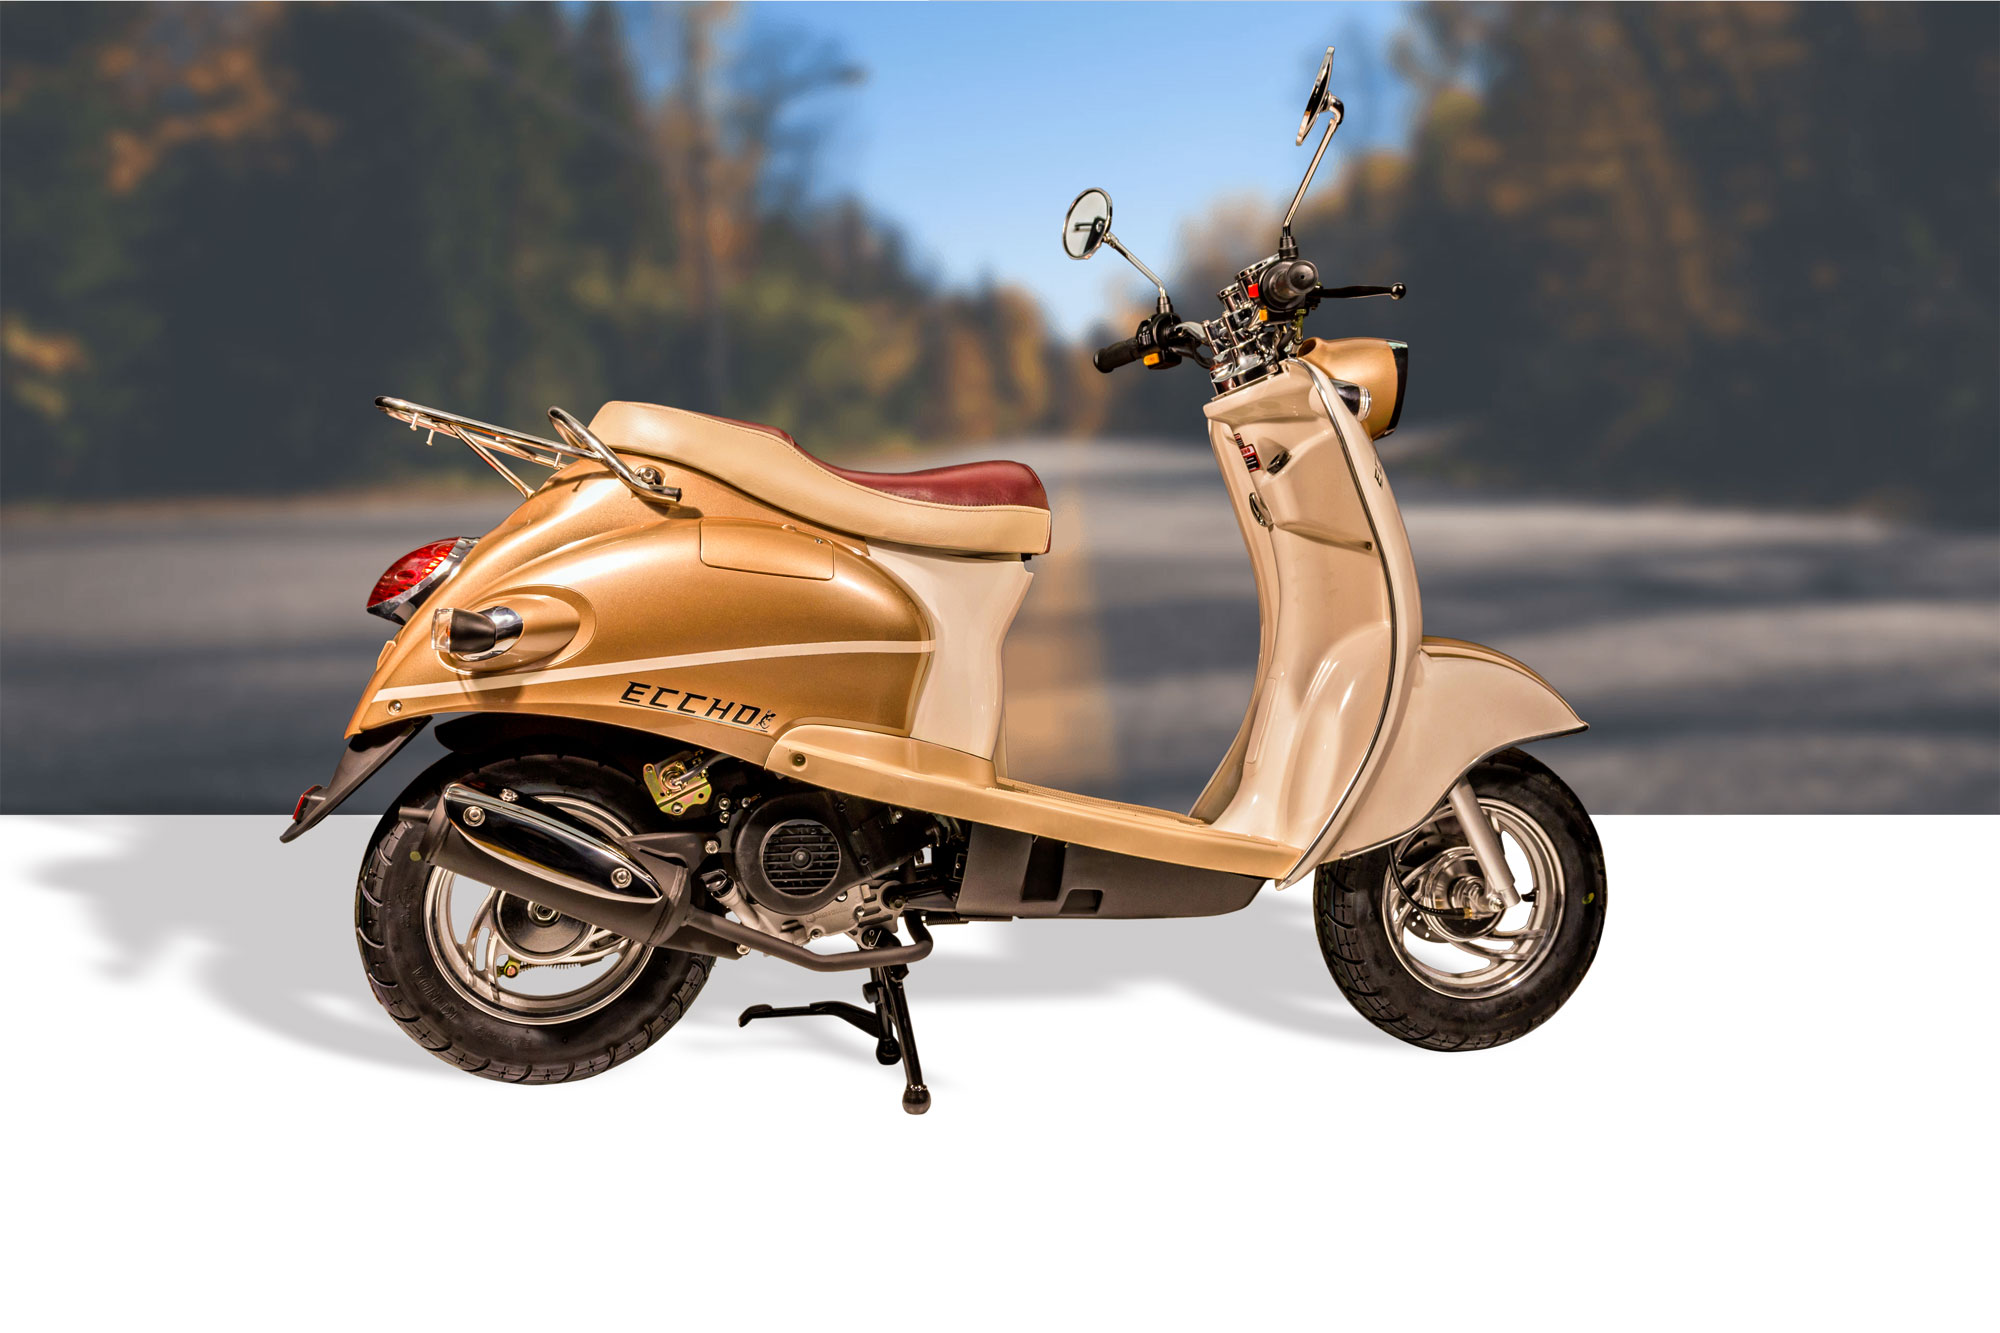 SCOOTER-50-ECCHO-RETRO-50-GOLD-II-03